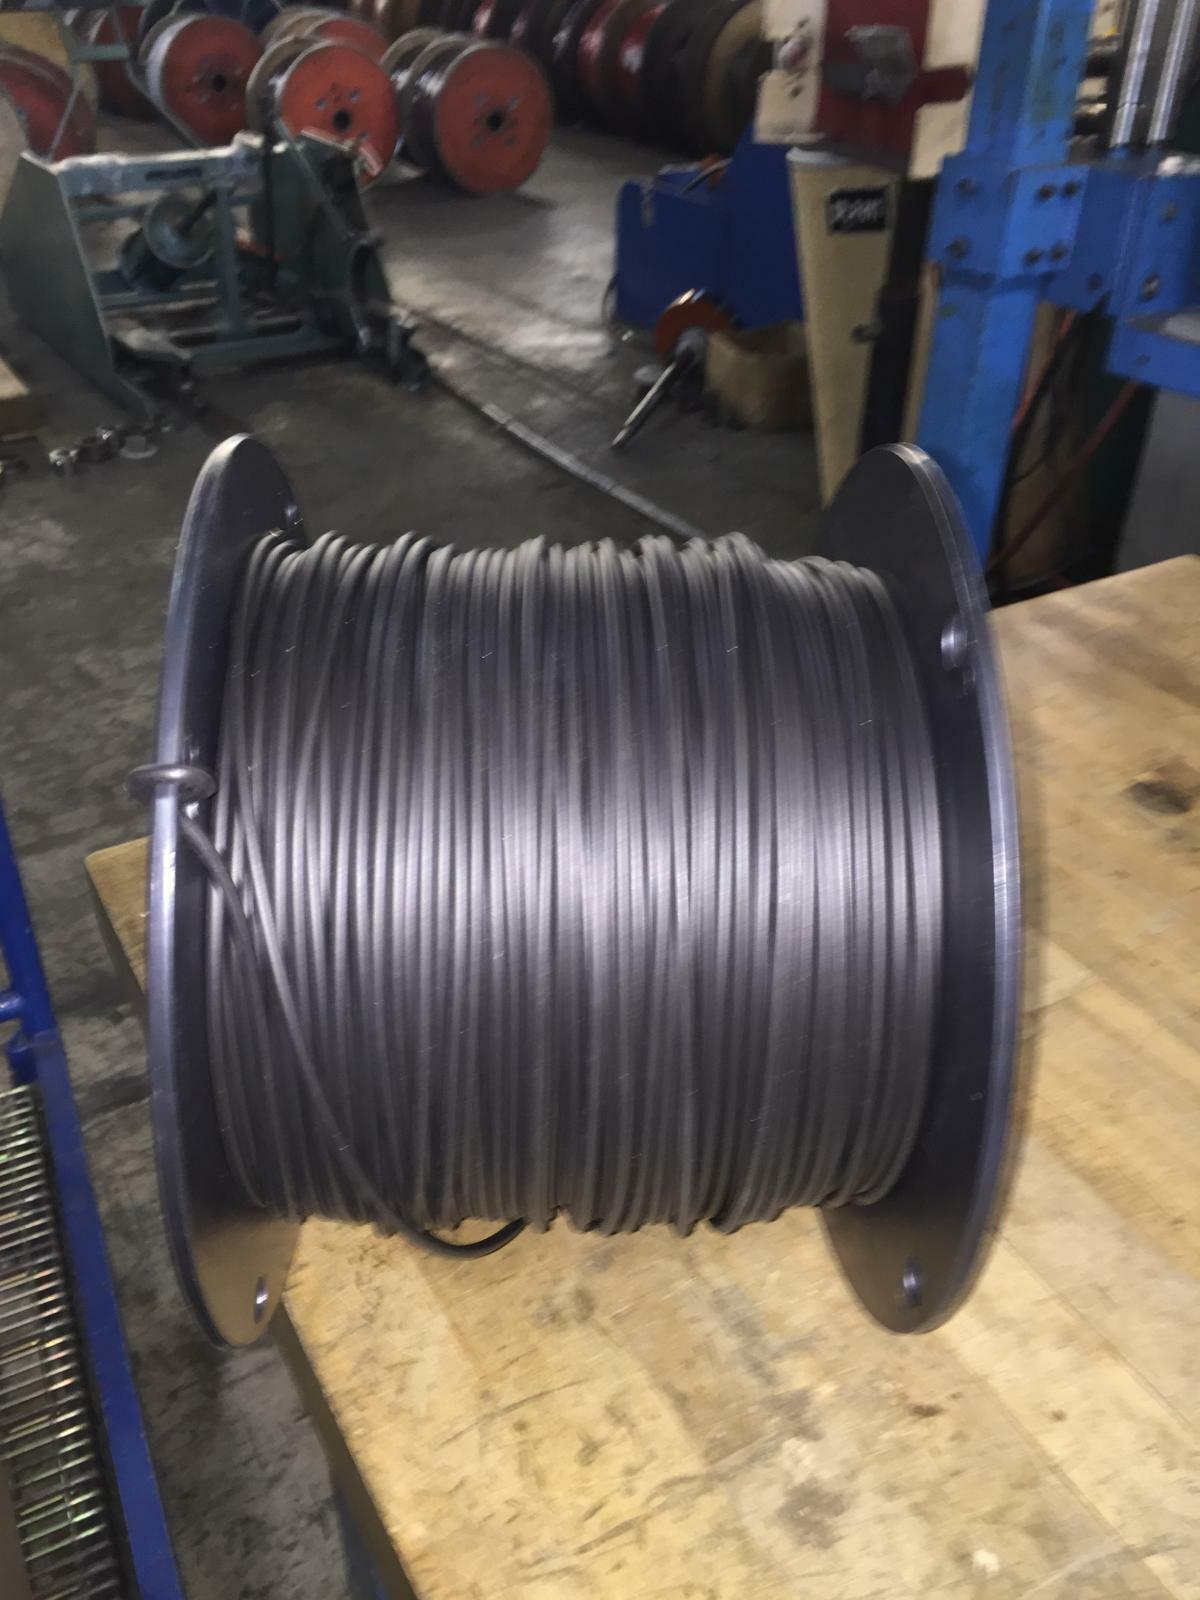 In Ground Pet Wire and More